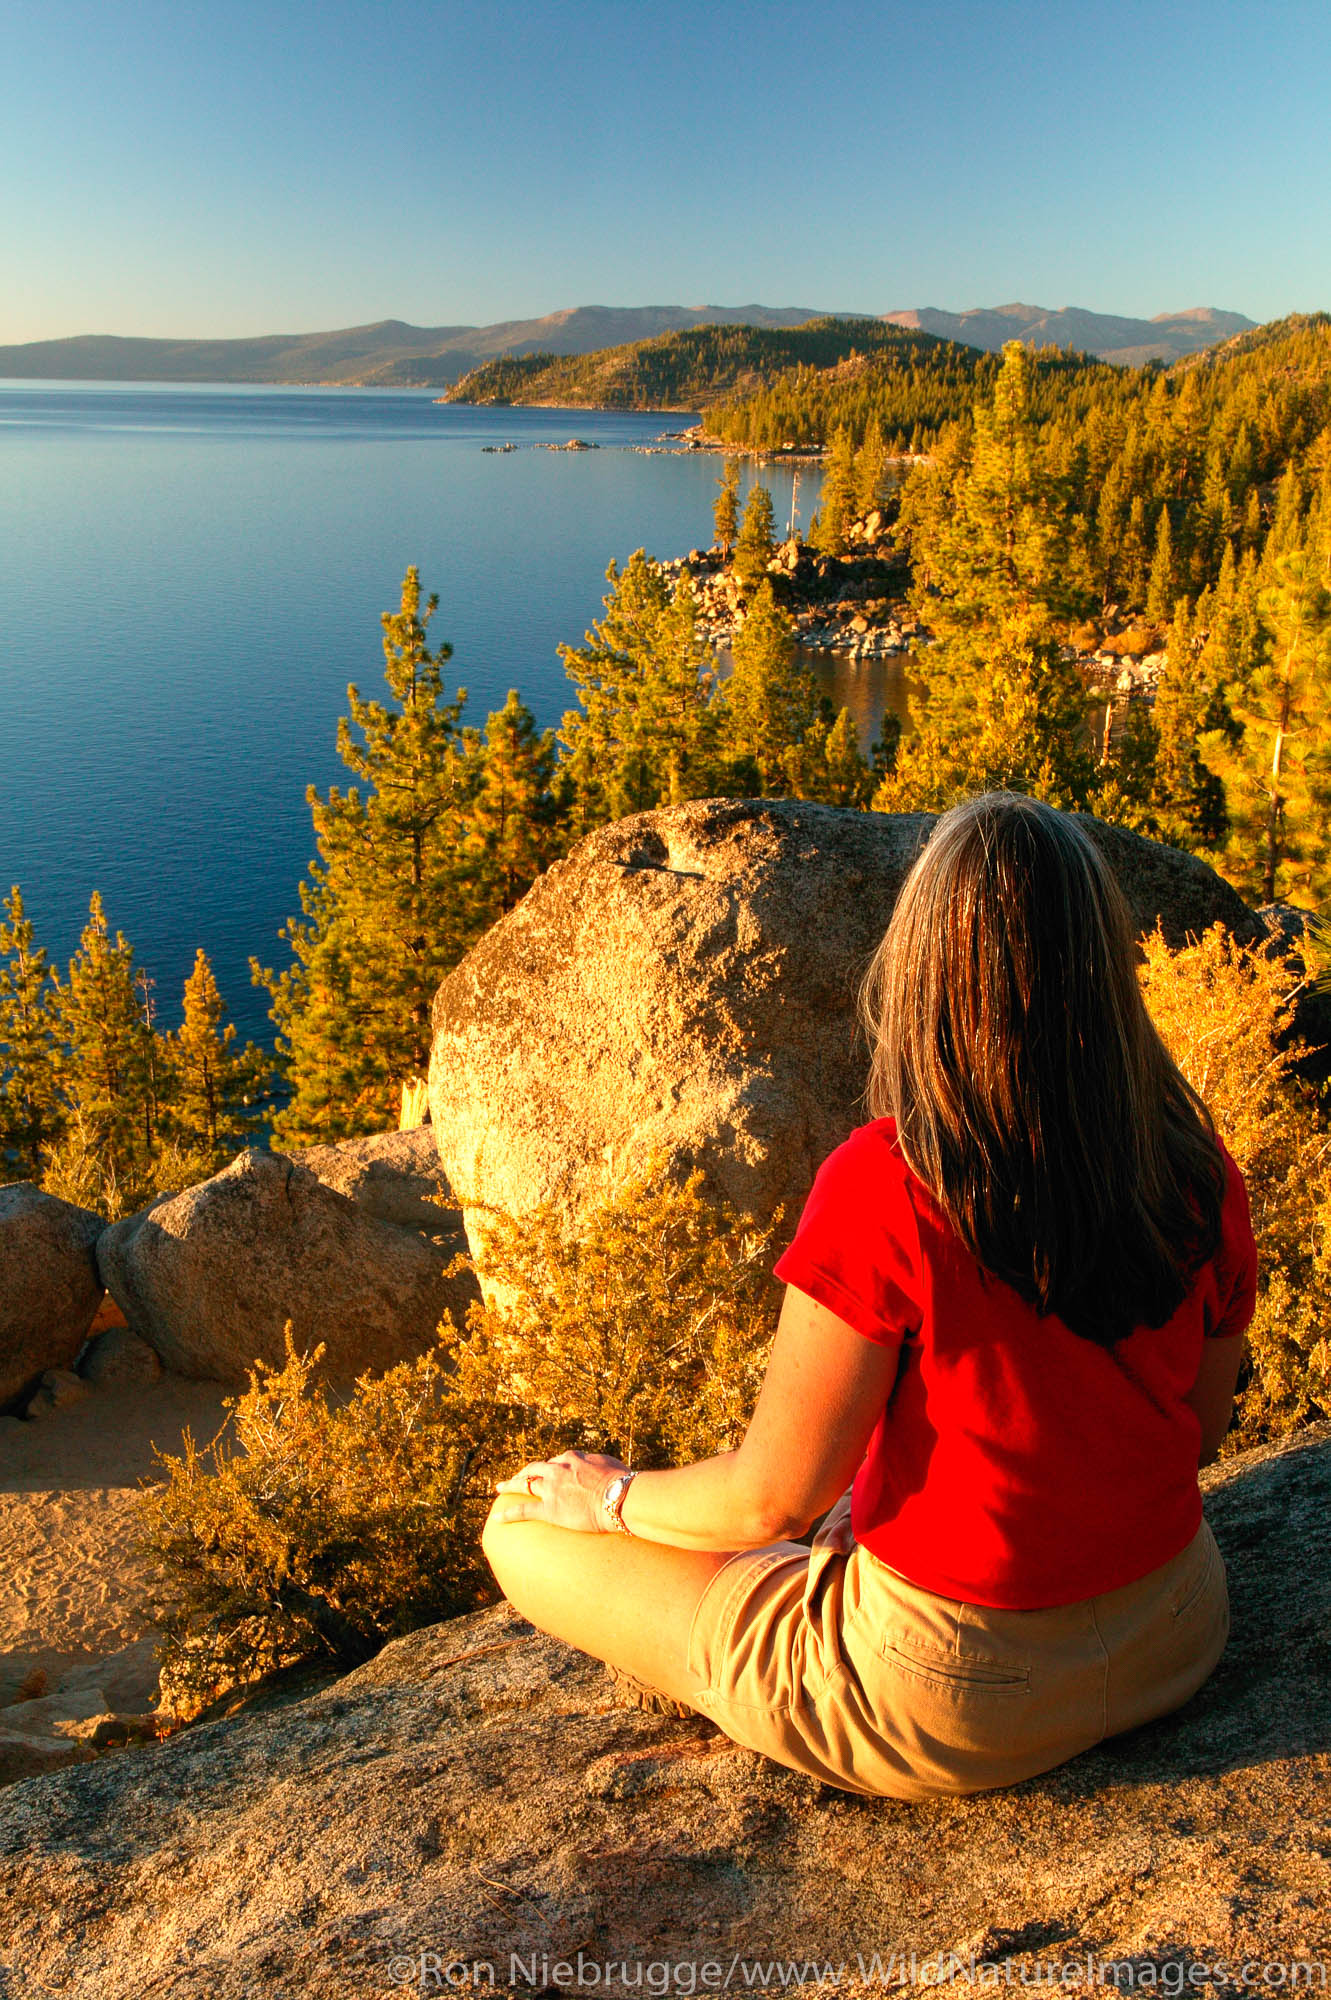 Visitor (MR) on the Nevada side looking towards California, Lake Tahoe.